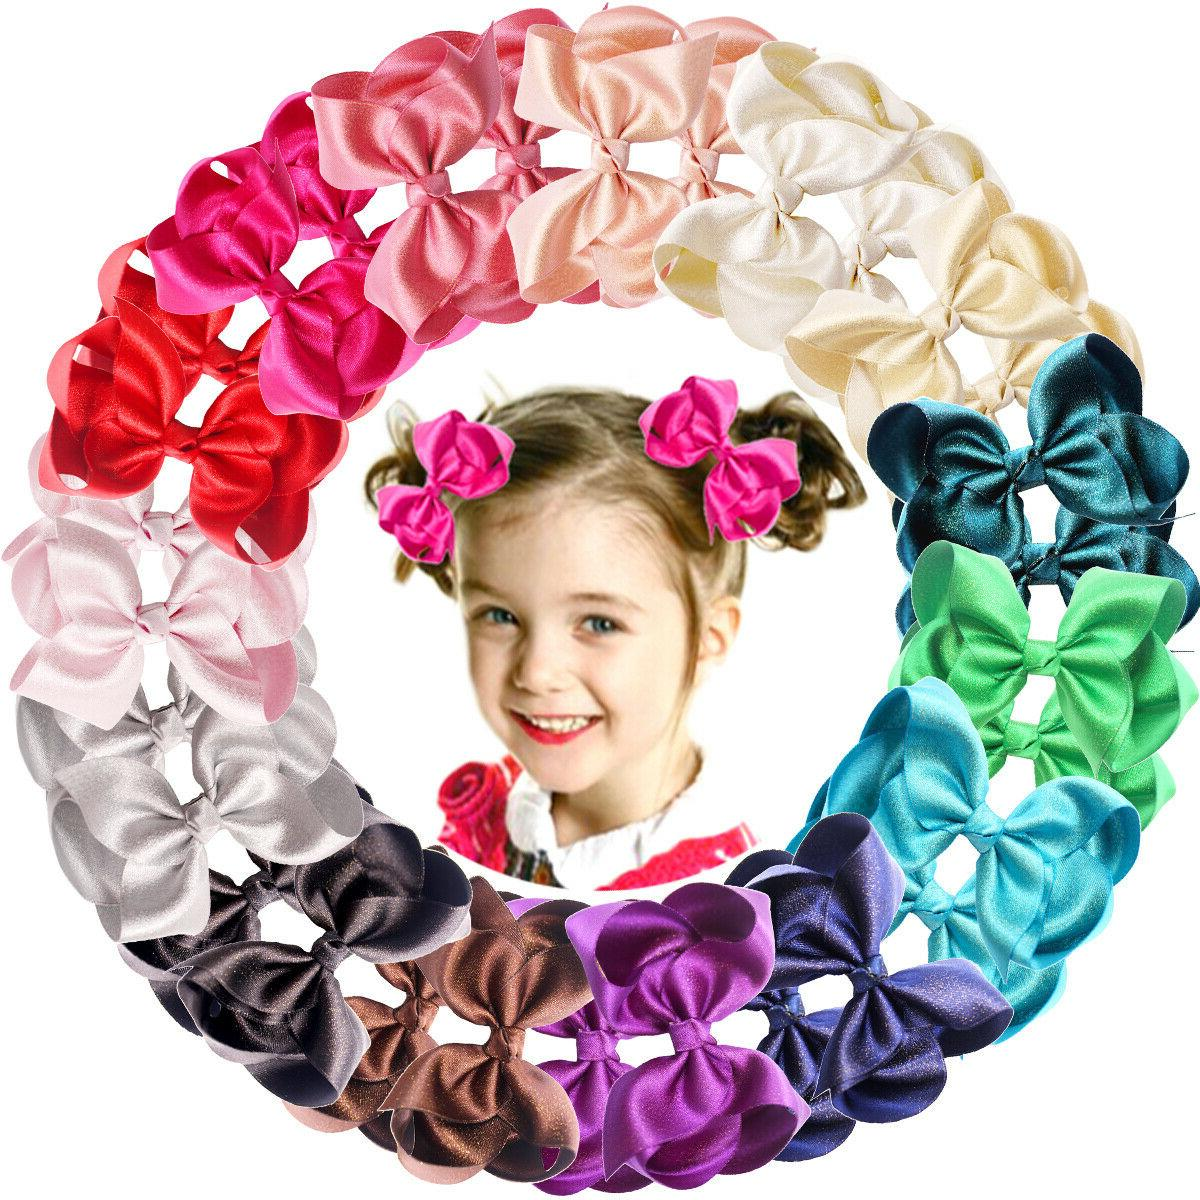 20pc LOT Baby Girls Big 6 Inch Hair Bows Alligator Hair Clip